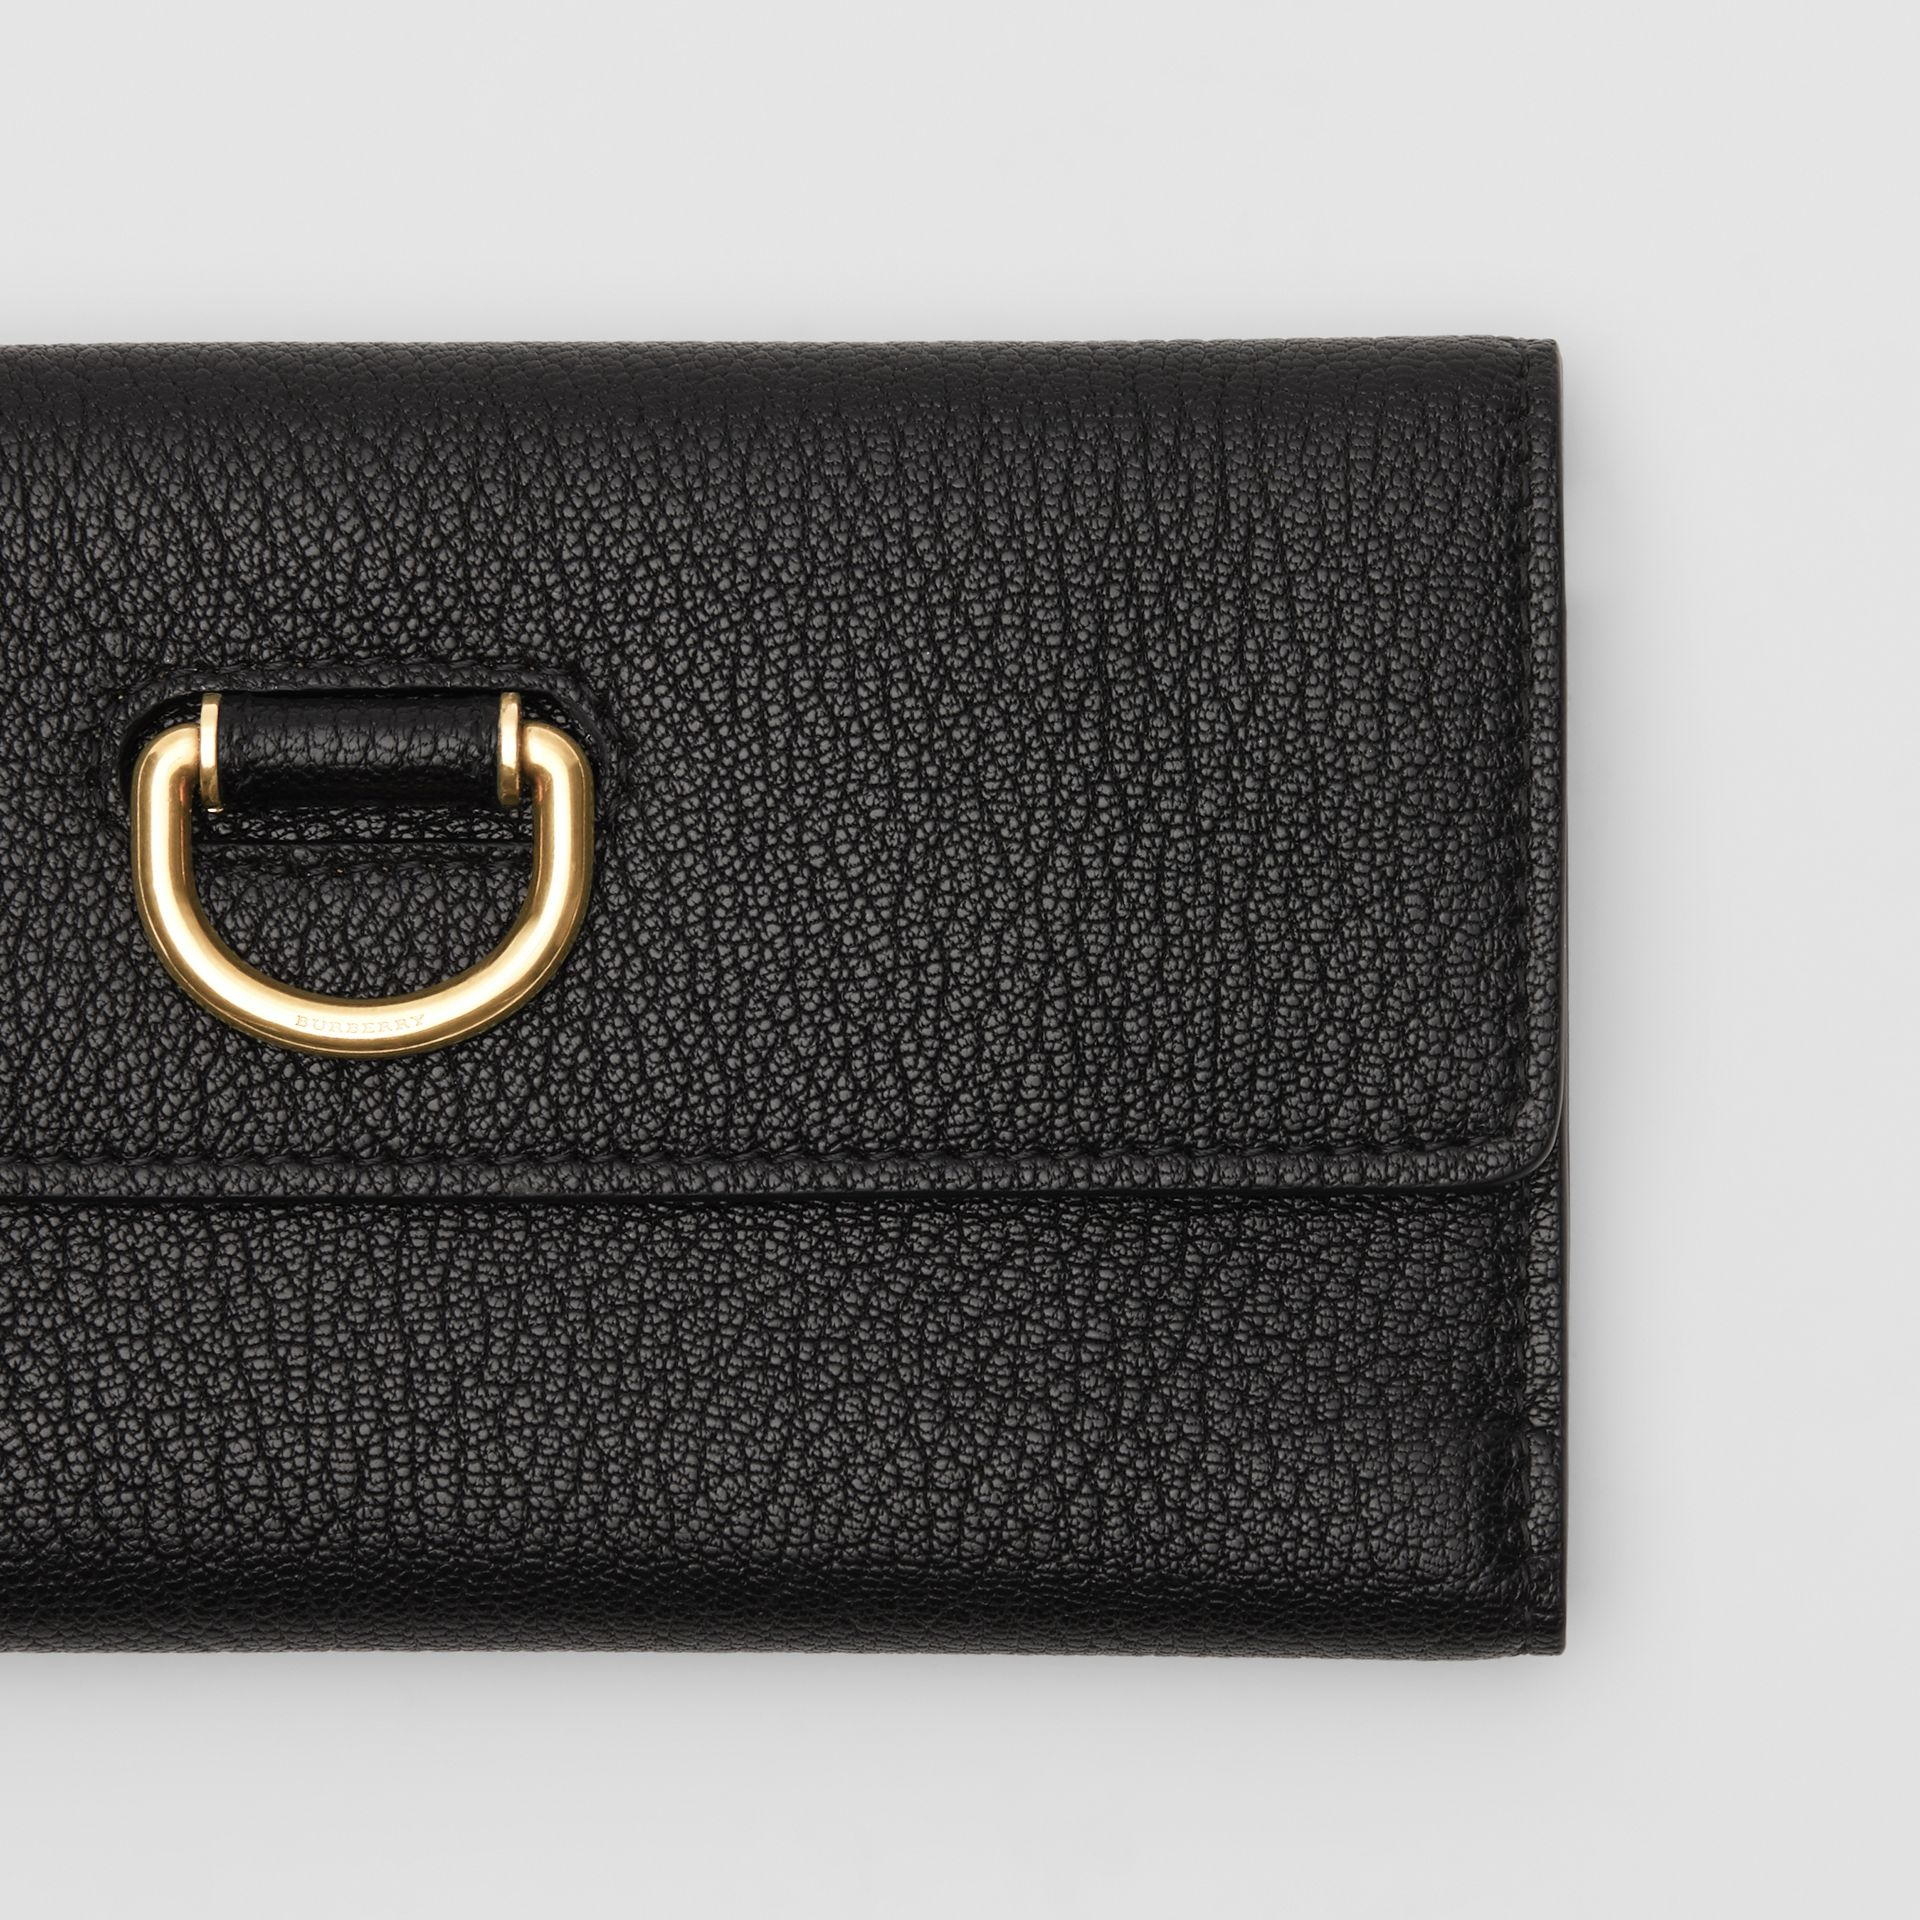 D-ring Grainy Leather Continental Wallet in Black - Women | Burberry - gallery image 1